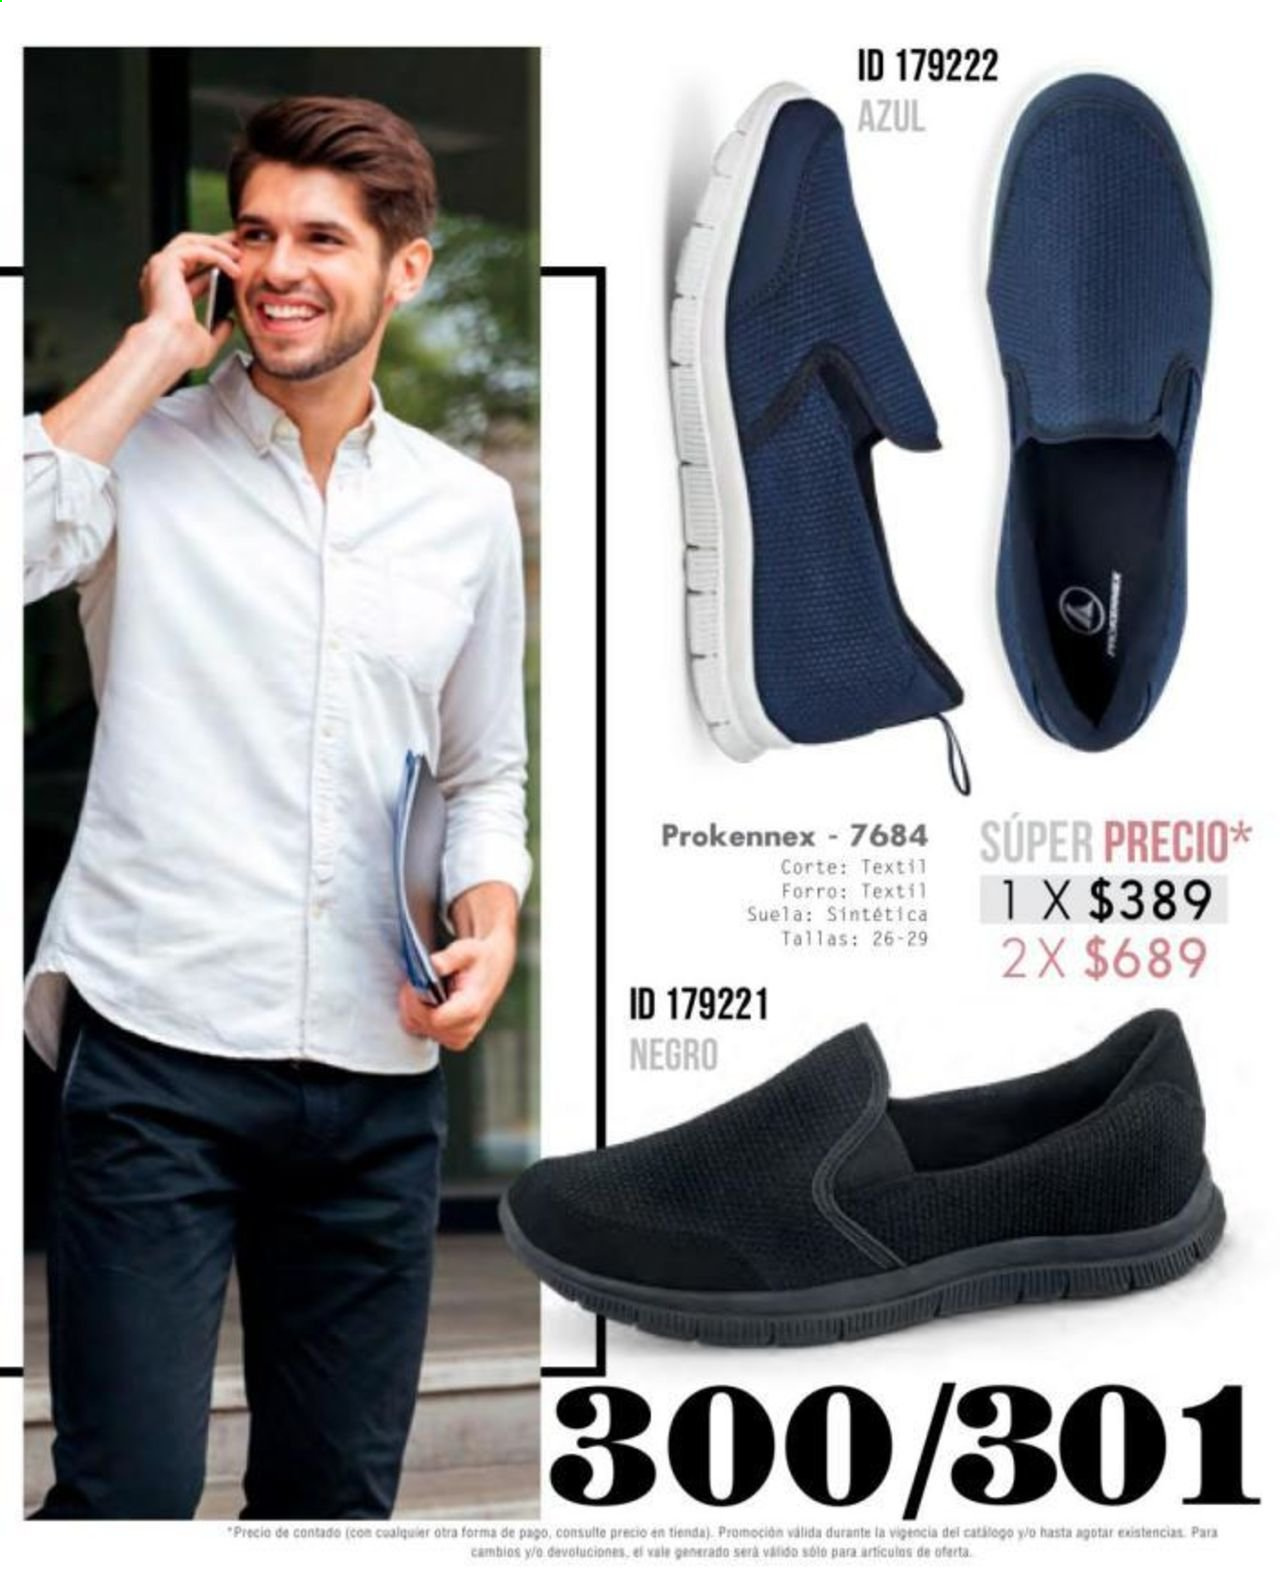 Oferta vigente Price Shoes. Página 299.